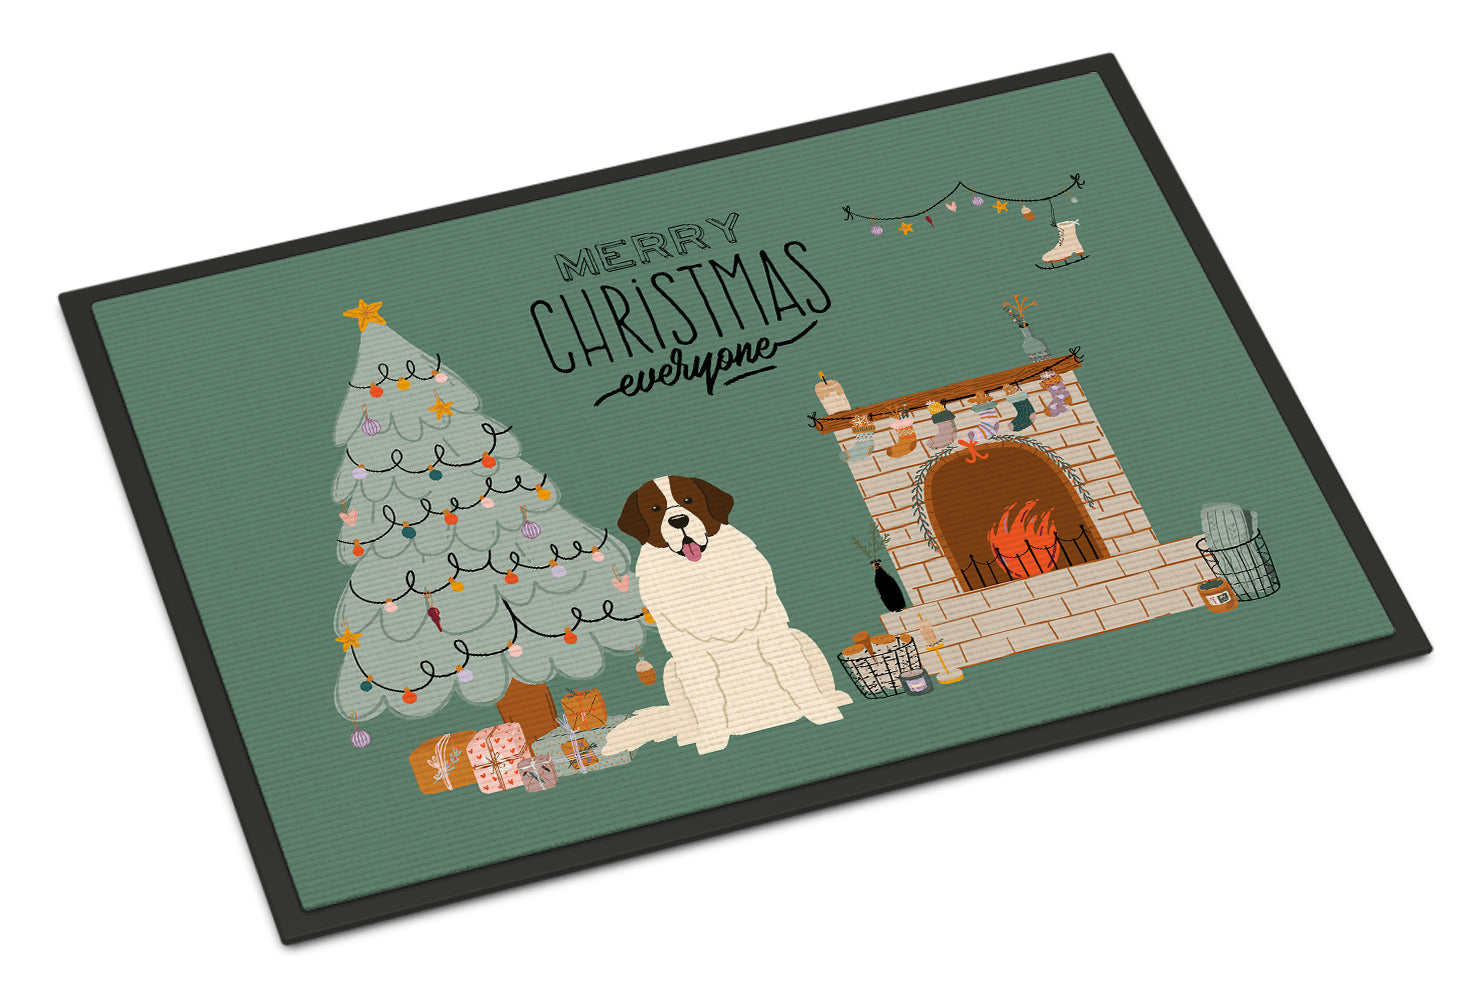 Moscow Watchdog Christmas Everyone Indoor or Outdoor Mat 18x27 CK7590MAT by Caroline's Treasures